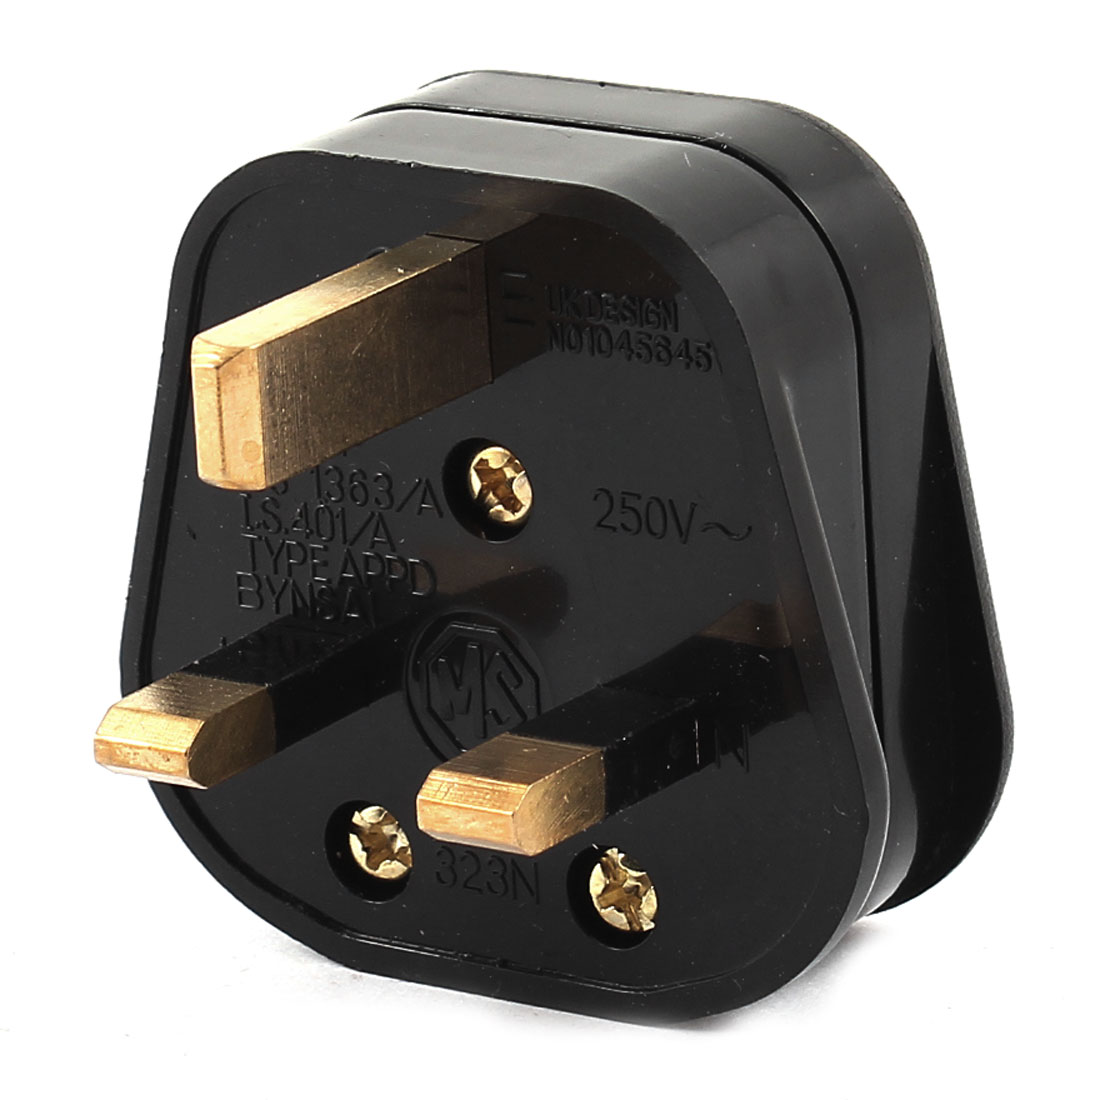 AC 250V 13A Black Plastic Power Adapter Connector UK Plug